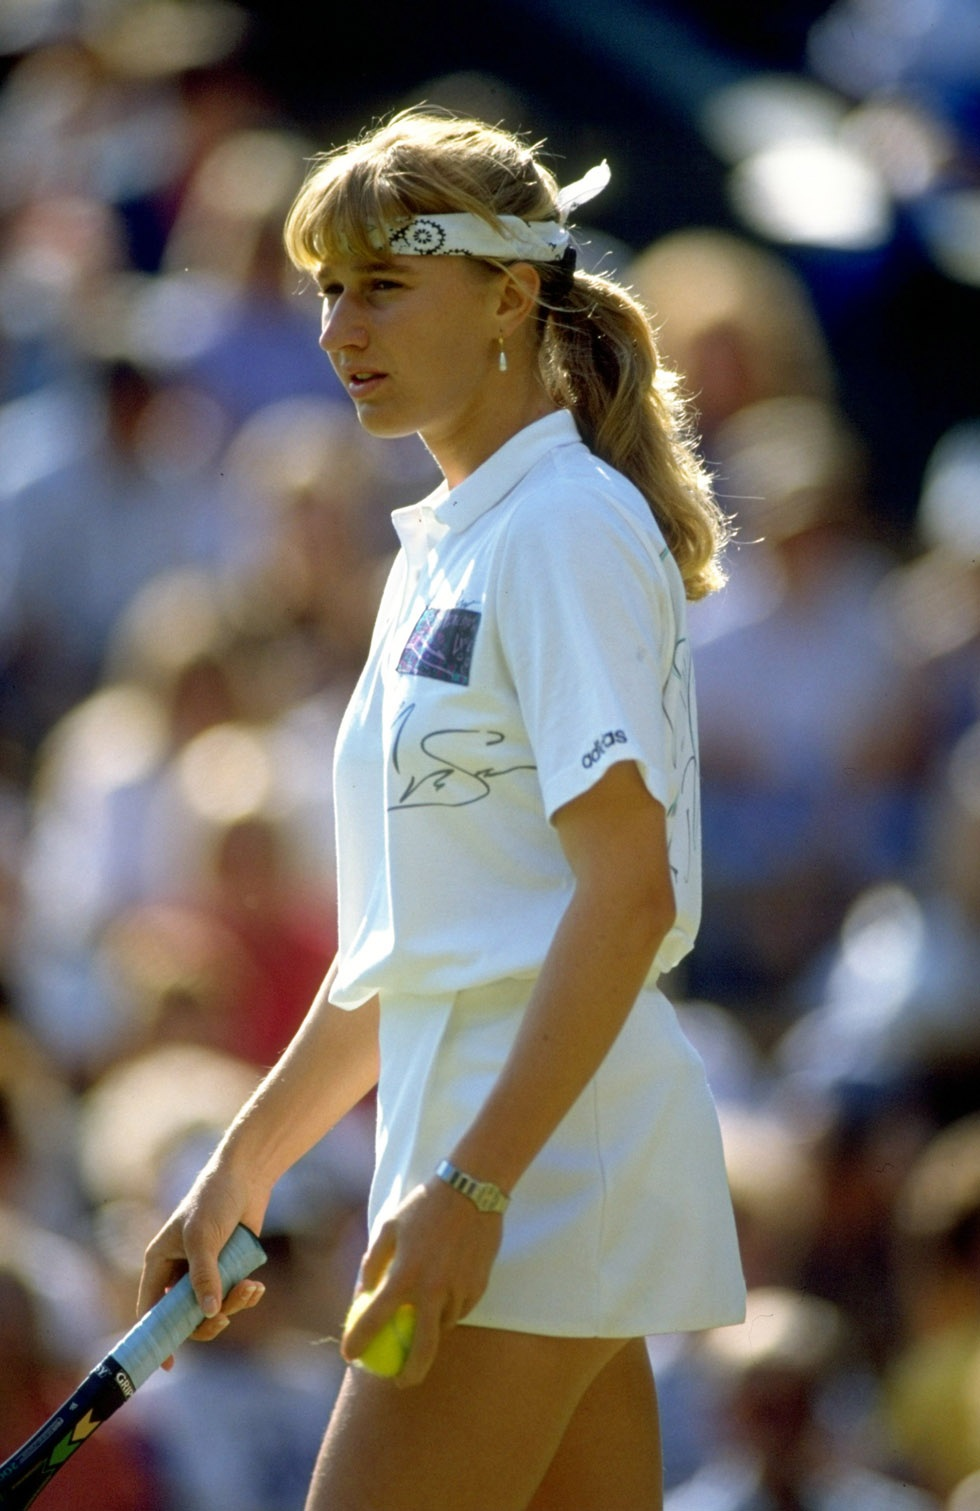 Young Steffi Graf More information qareefo